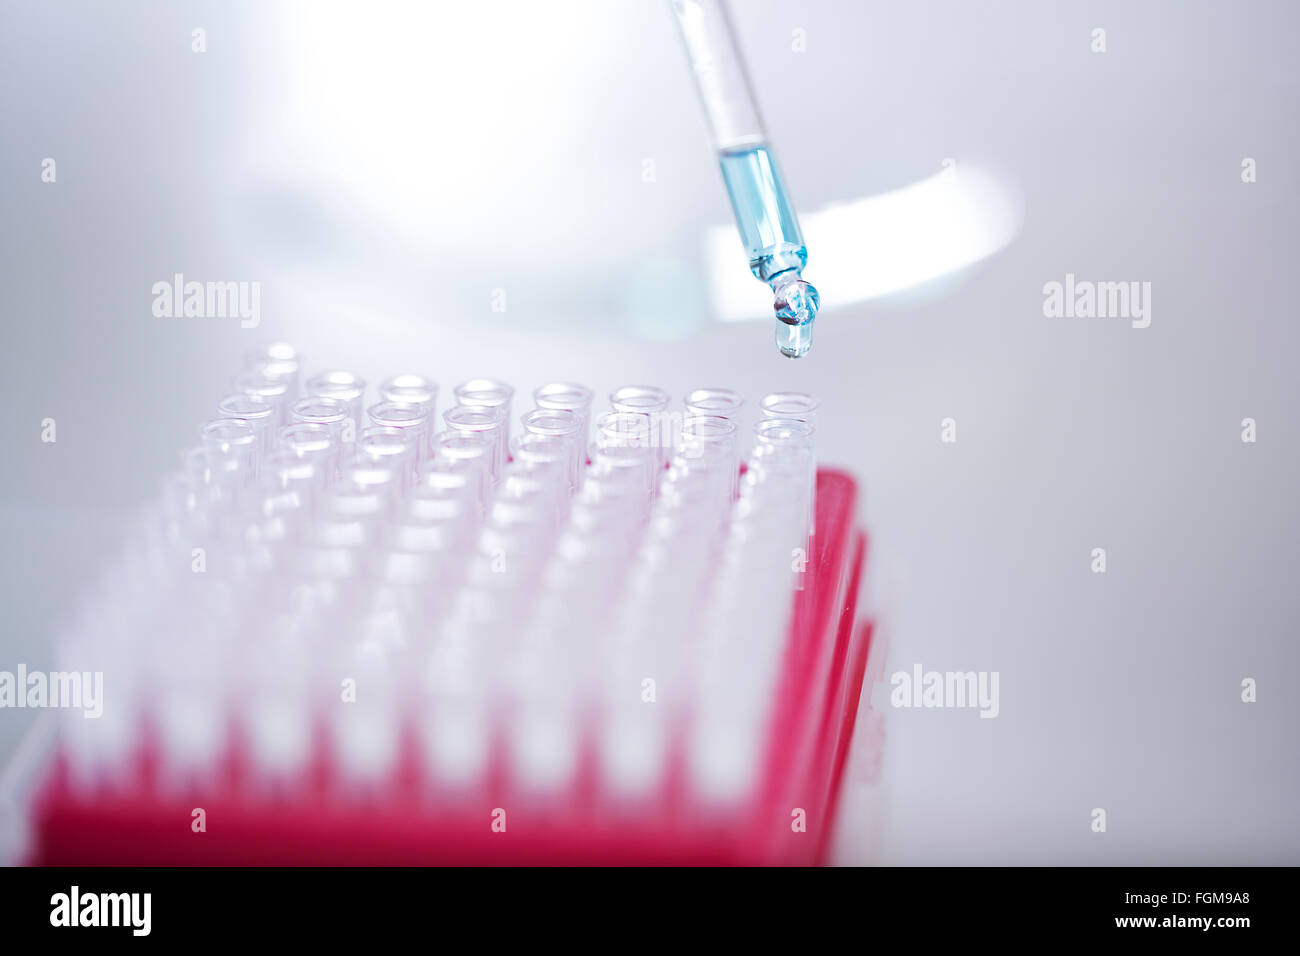 Blue liquid dripping from pipette into test tube - Stock Image